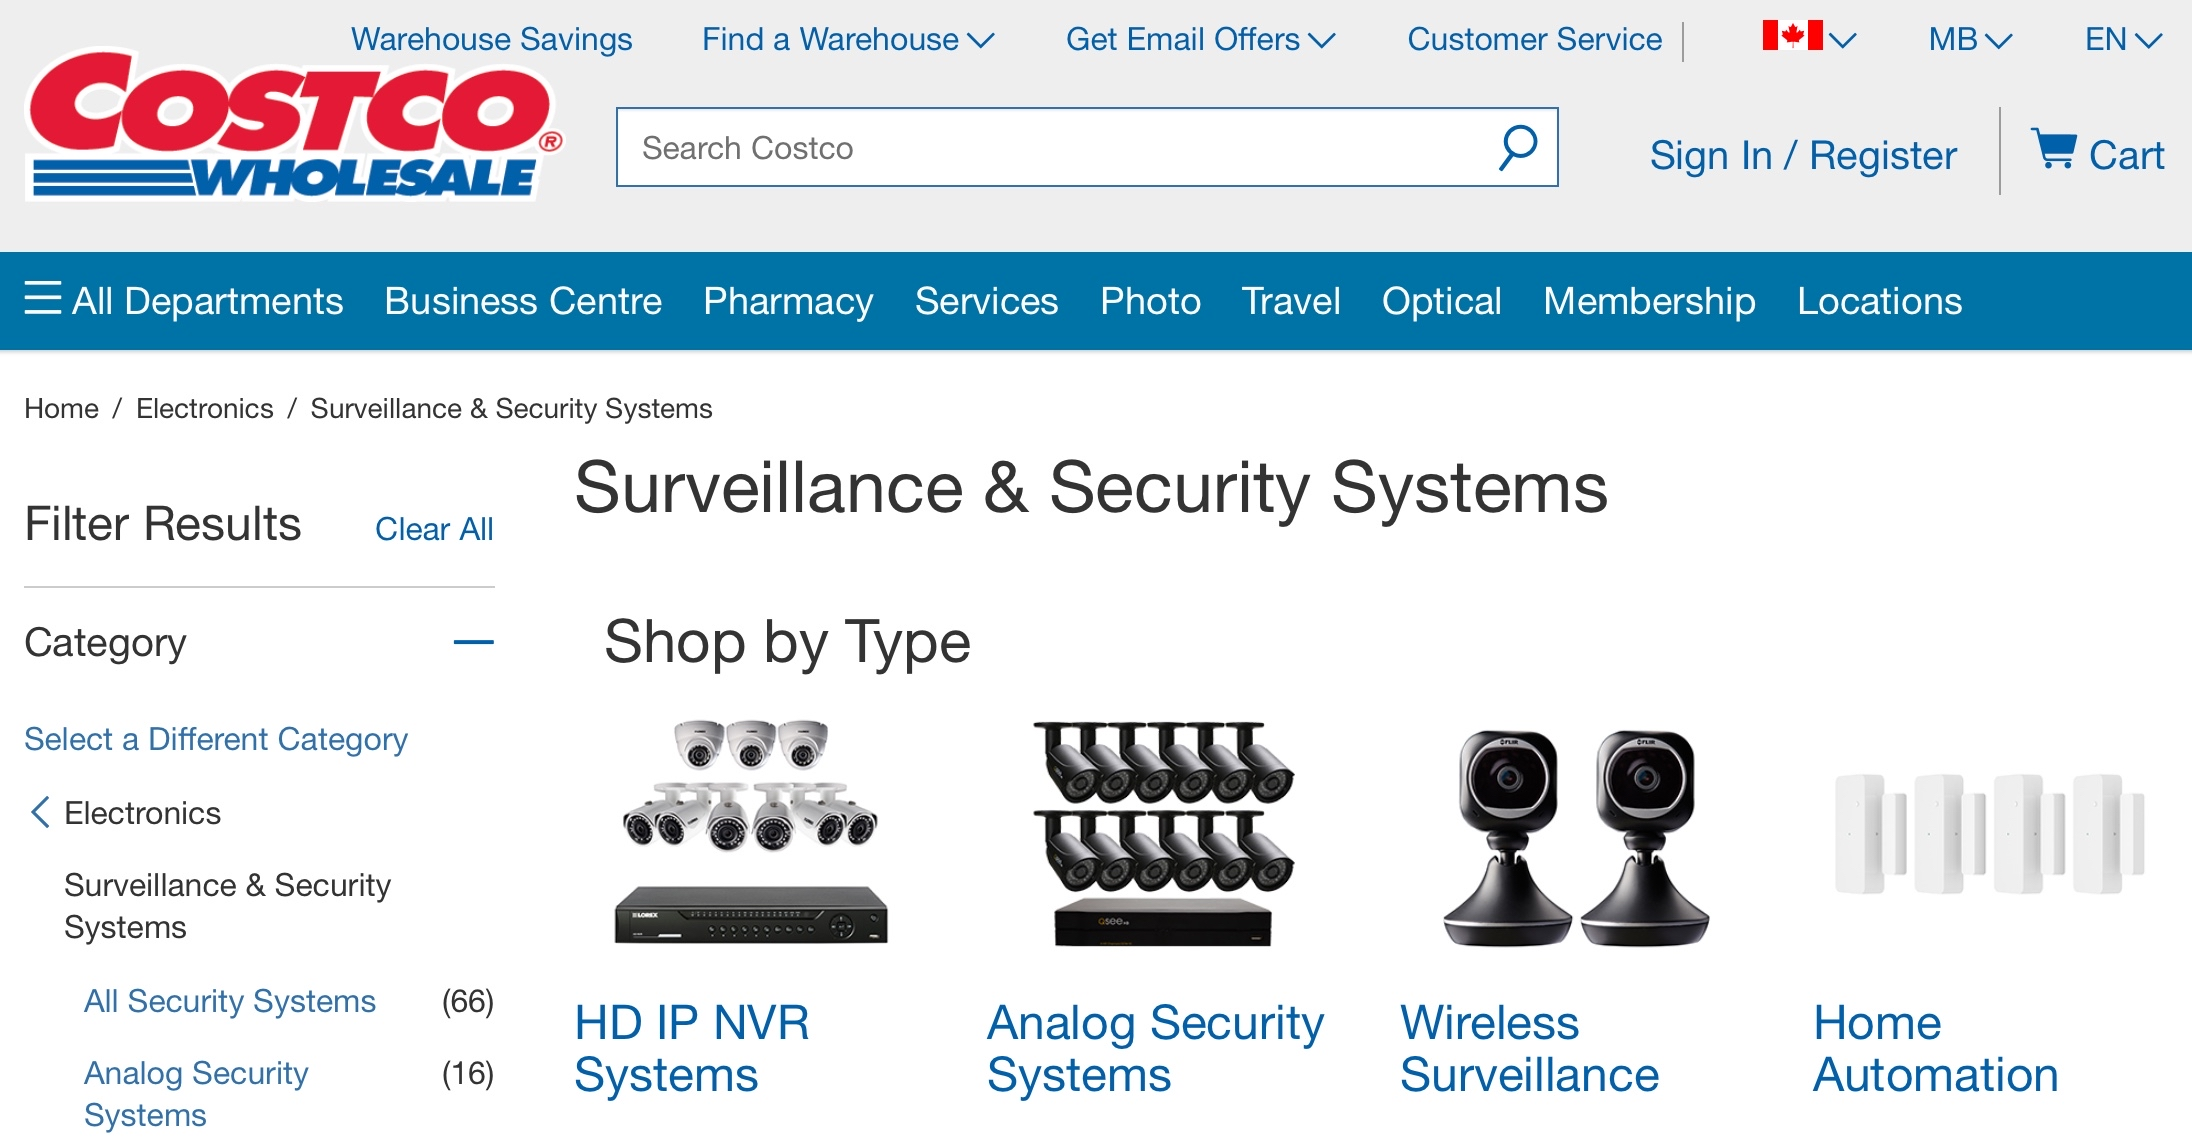 Tip #8 - You can install video surveillance cameras